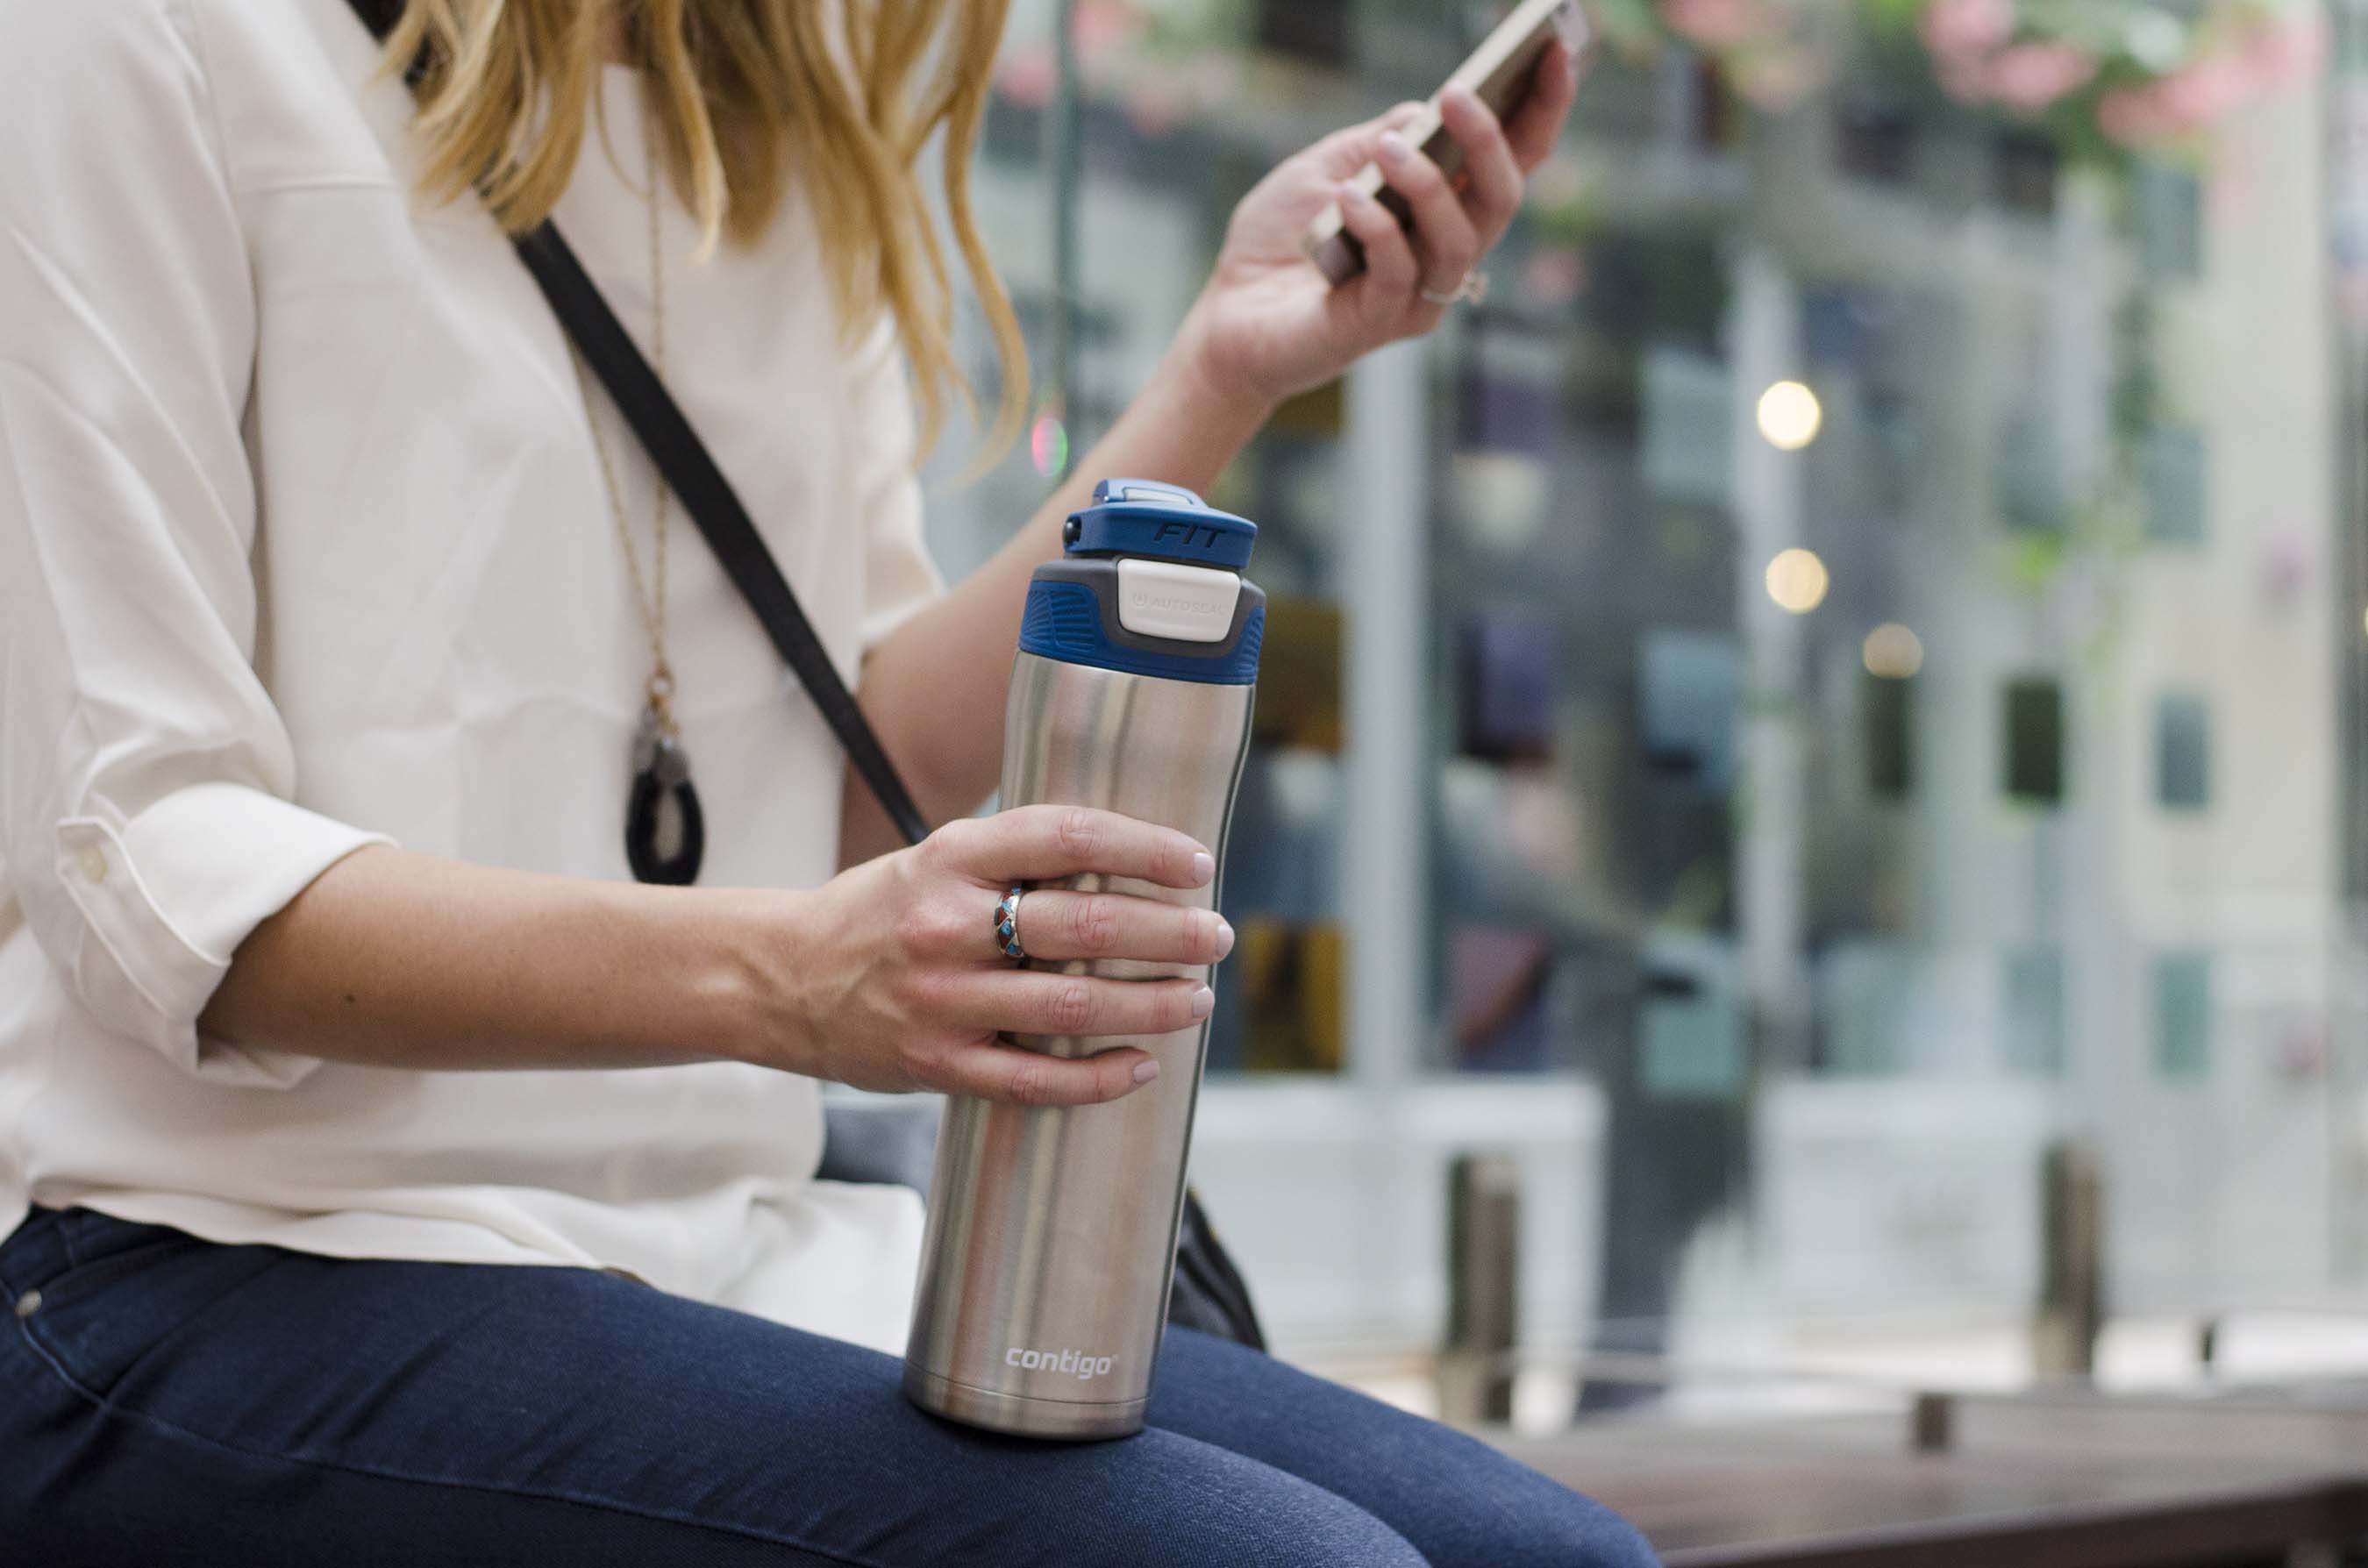 The Contigo® #SipConfidently campaign encourages consumers to sip their beverages confidently and avoid everyday spill situations, like the morning commute.